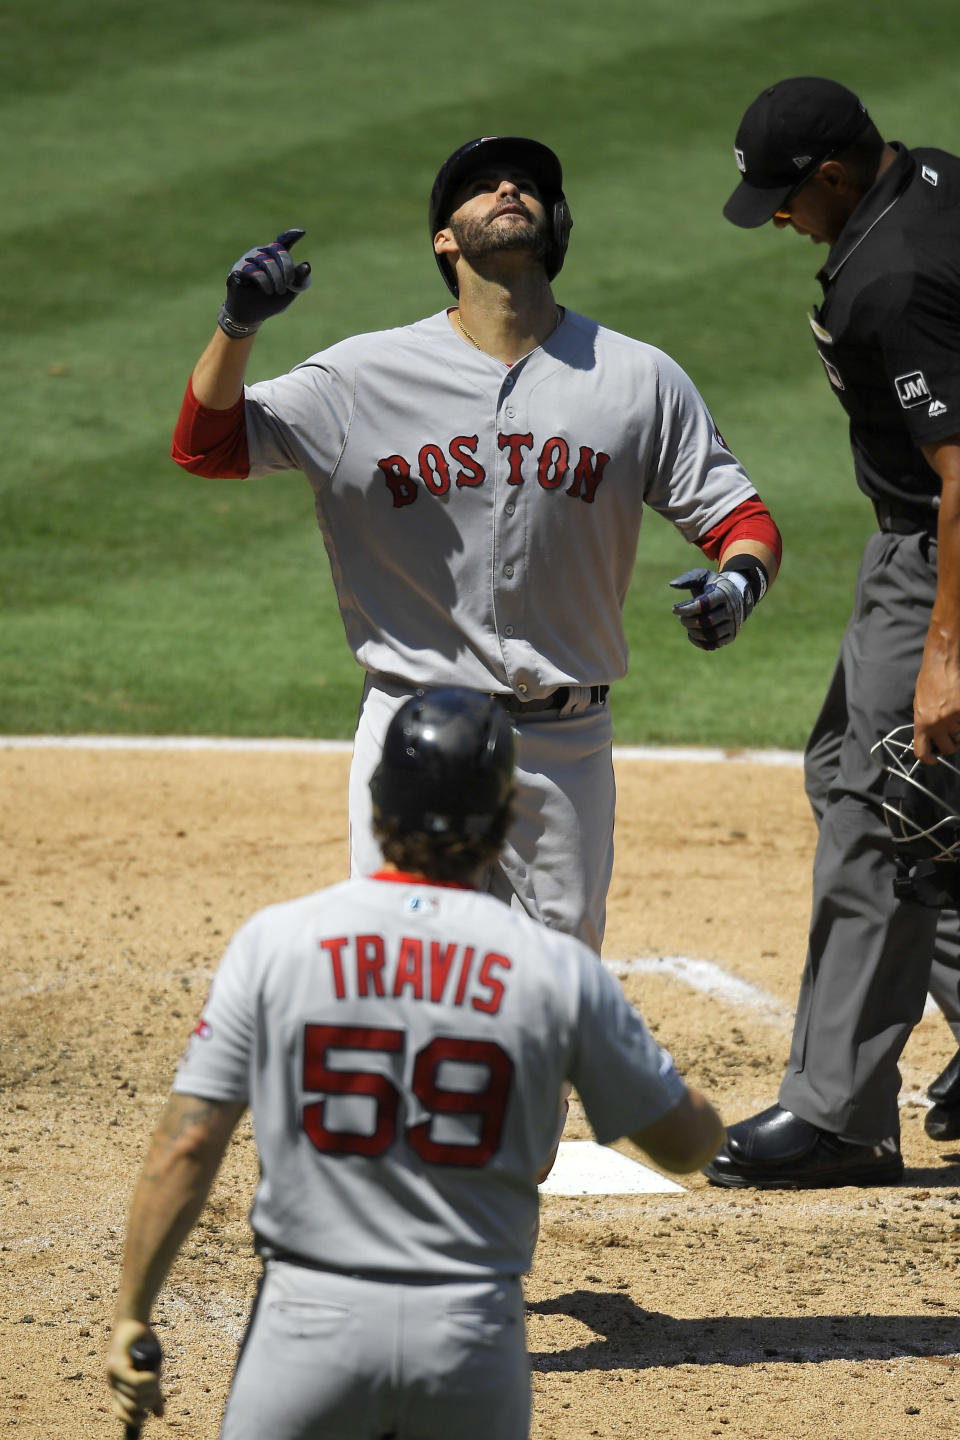 Boston Red Sox's J.D. Martinez, top, gestures as he scores on his solo home run as Sam Travis, bottom, waits to congratulate him during the third inning of a baseball game against the Los Angeles Angels, Sunday, Sept. 1, 2019, in Anaheim, Calif. (AP Photo/Mark J. Terrill)